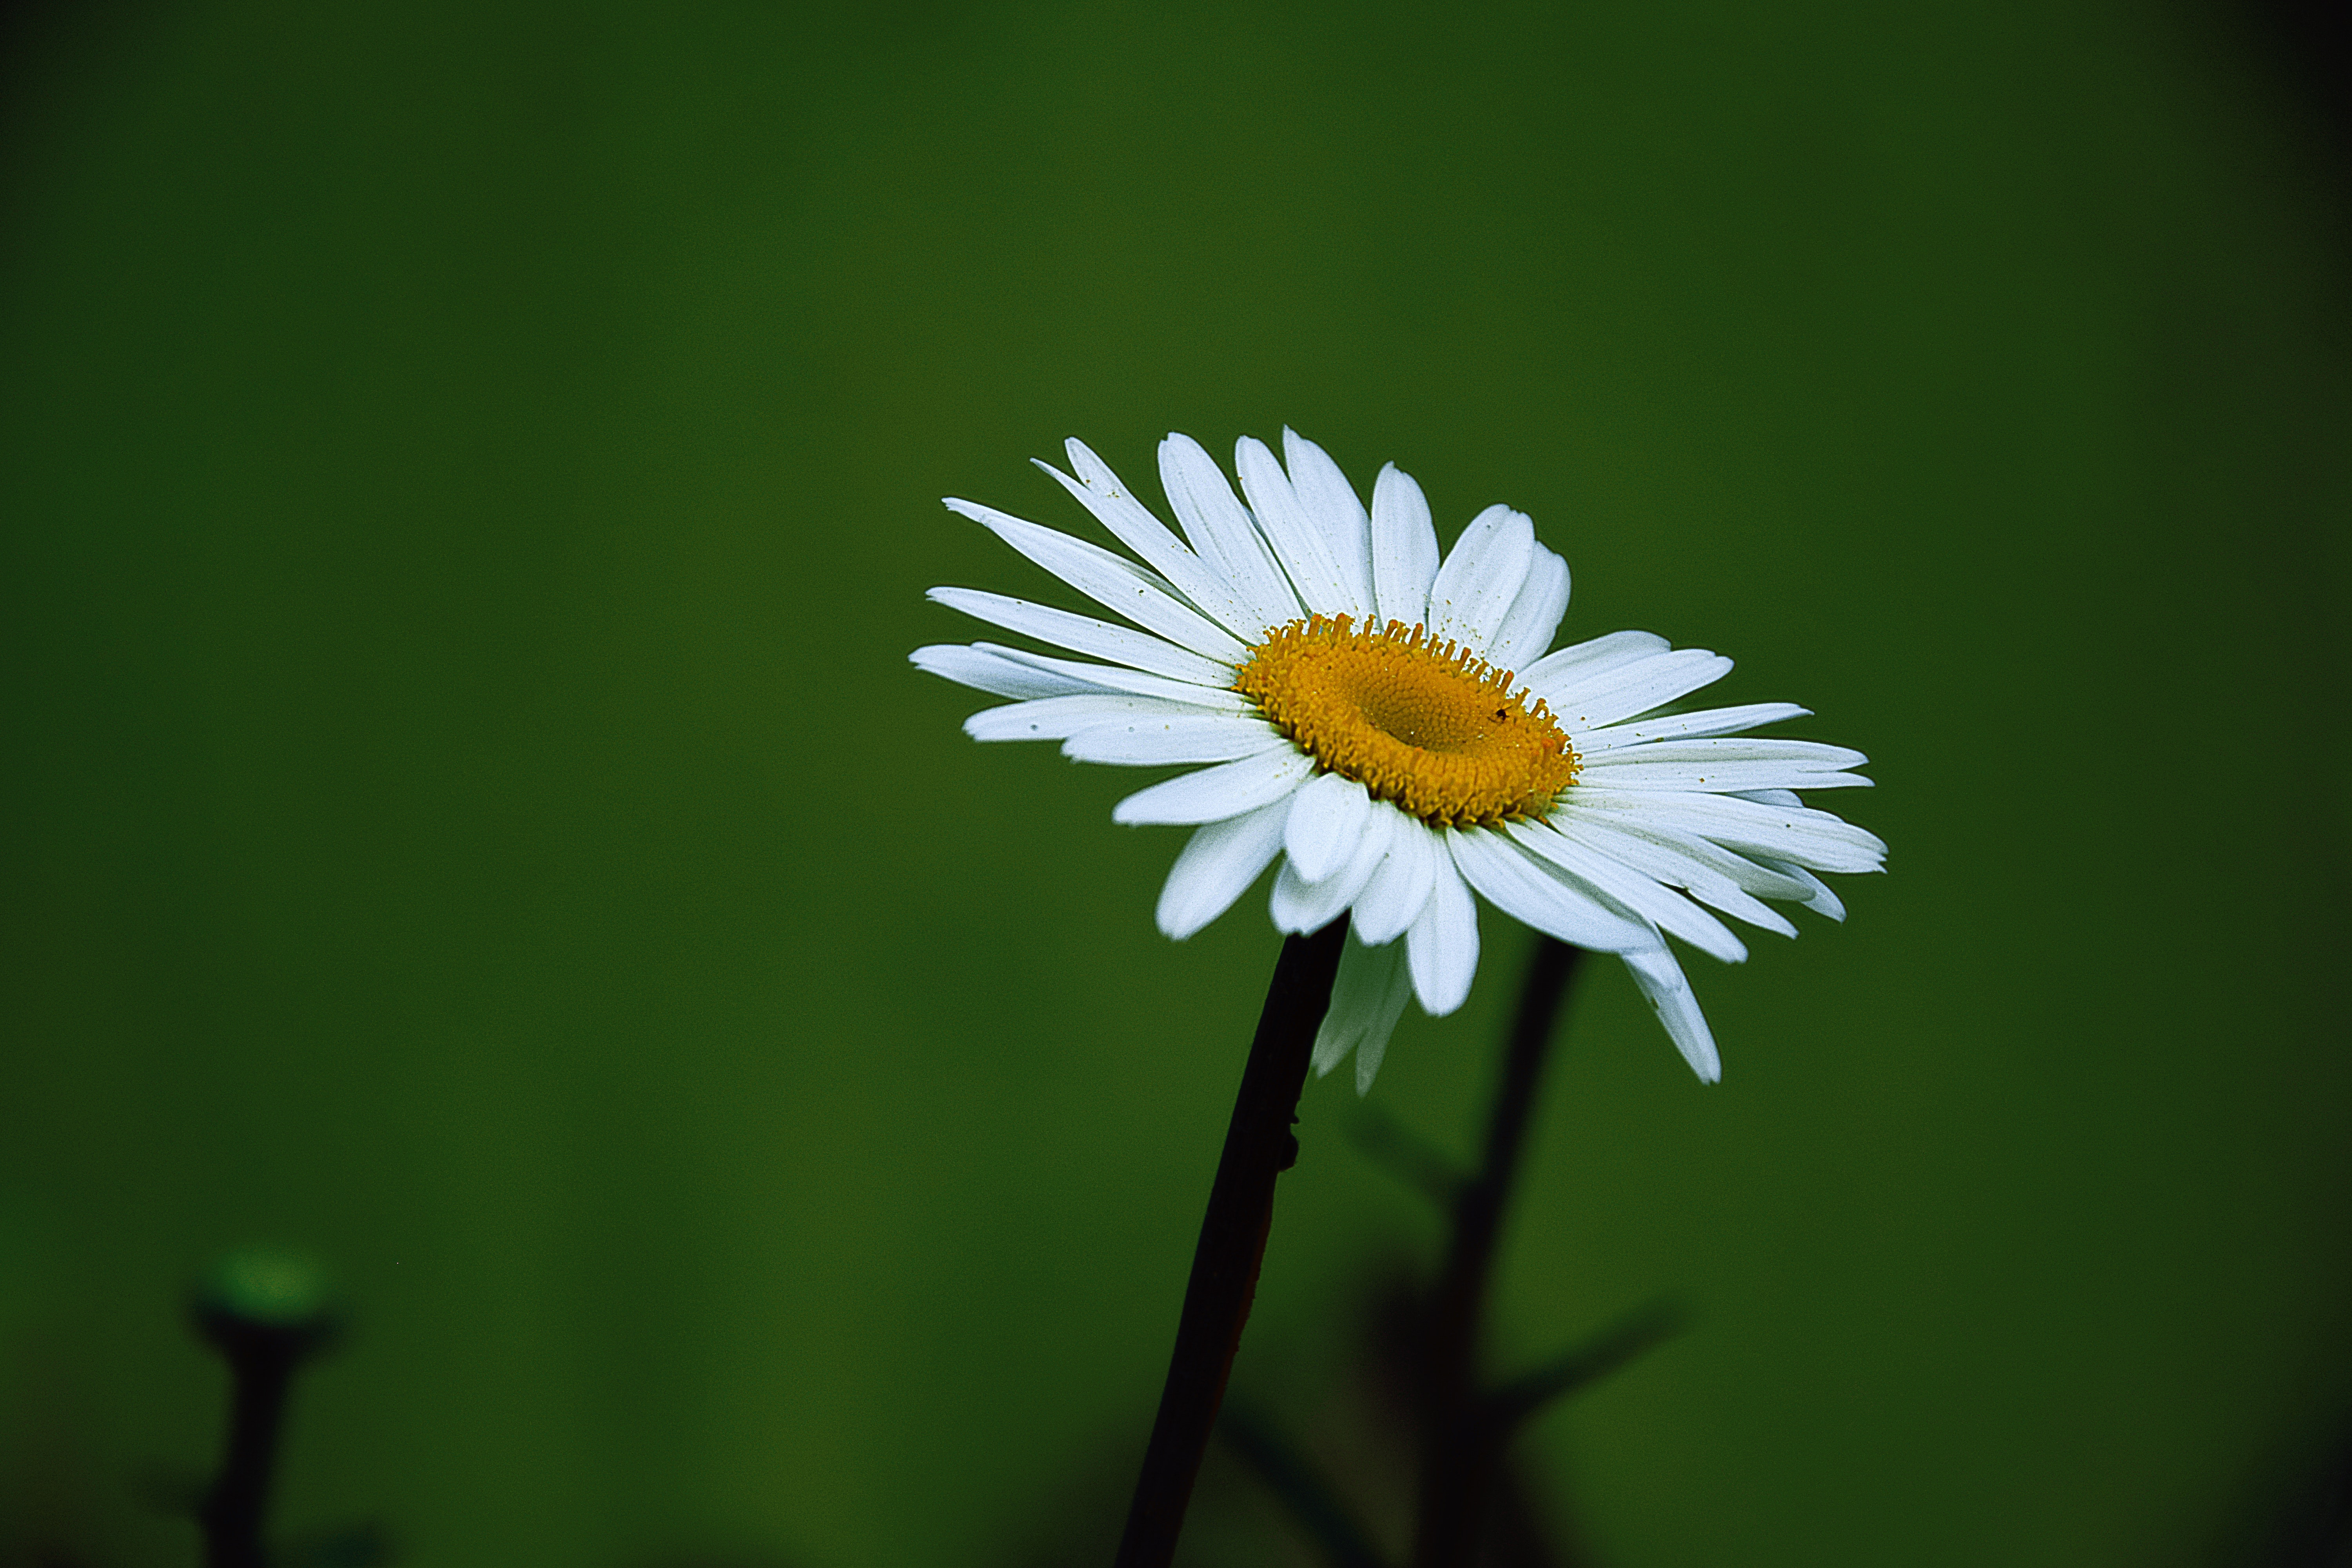 Yellow and White Daisy Flower, HD wallpaper, Macro, Outdoors, Petals, HQ Photo